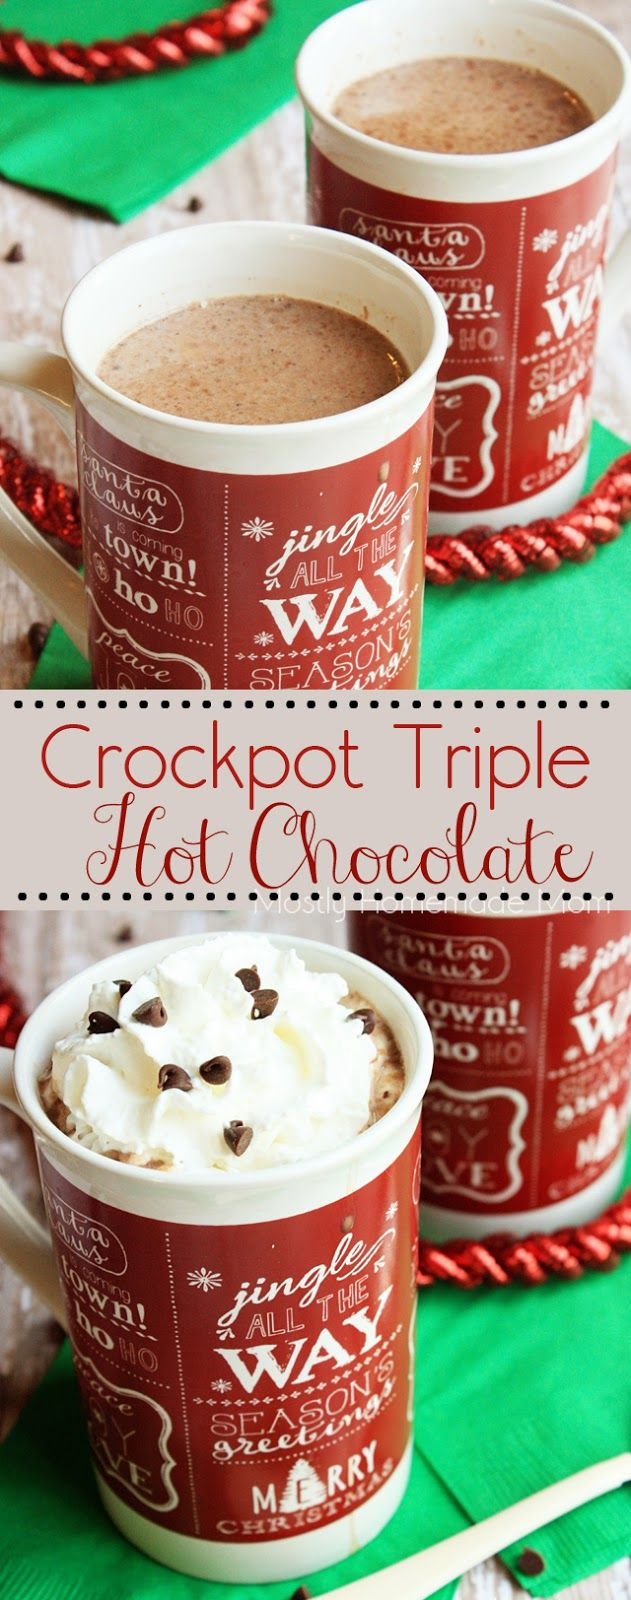 Crockpot Triple Hot Chocolate - White chocolate, baking cocoa, semi sweet, and unsweetened chocolate slow cook in milk and sugar for this decadent, rich hot chocolate - perfect for any Christmas or holiday party! #SendHallmark #ad